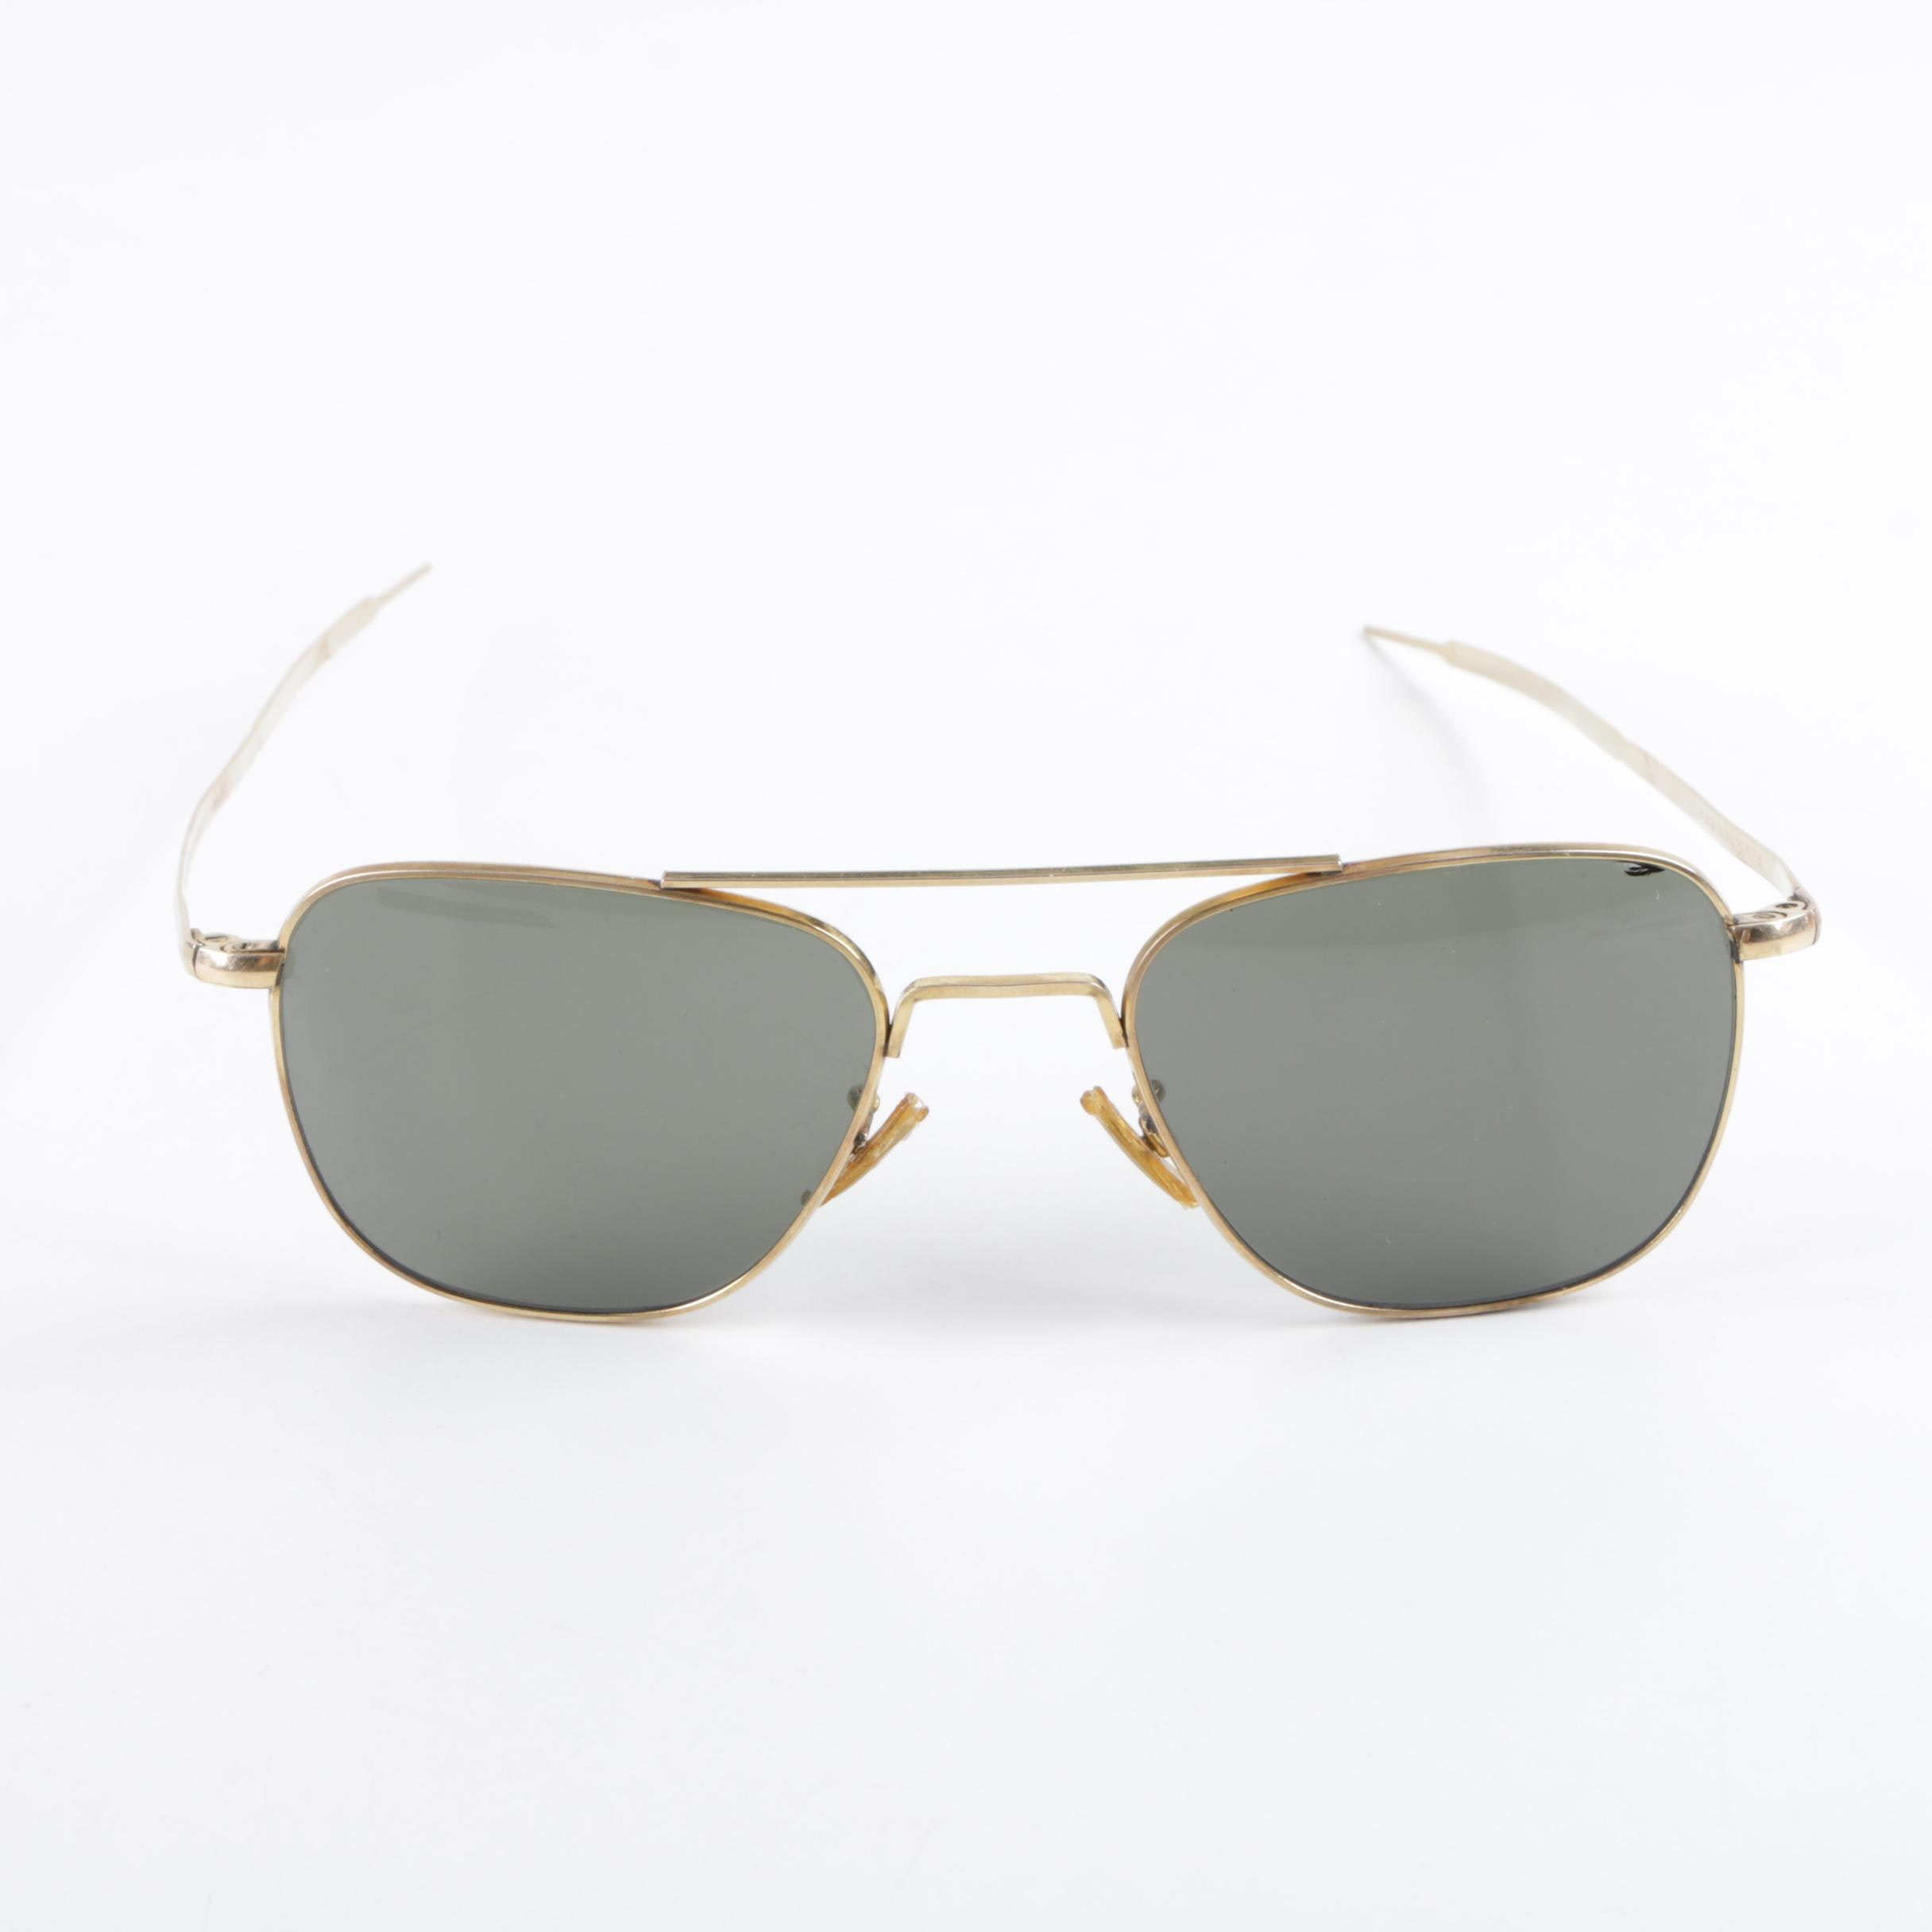 Vintage Welsh Mfg. Co. 1/10 12K Gold Filled Aviator Sunglasses